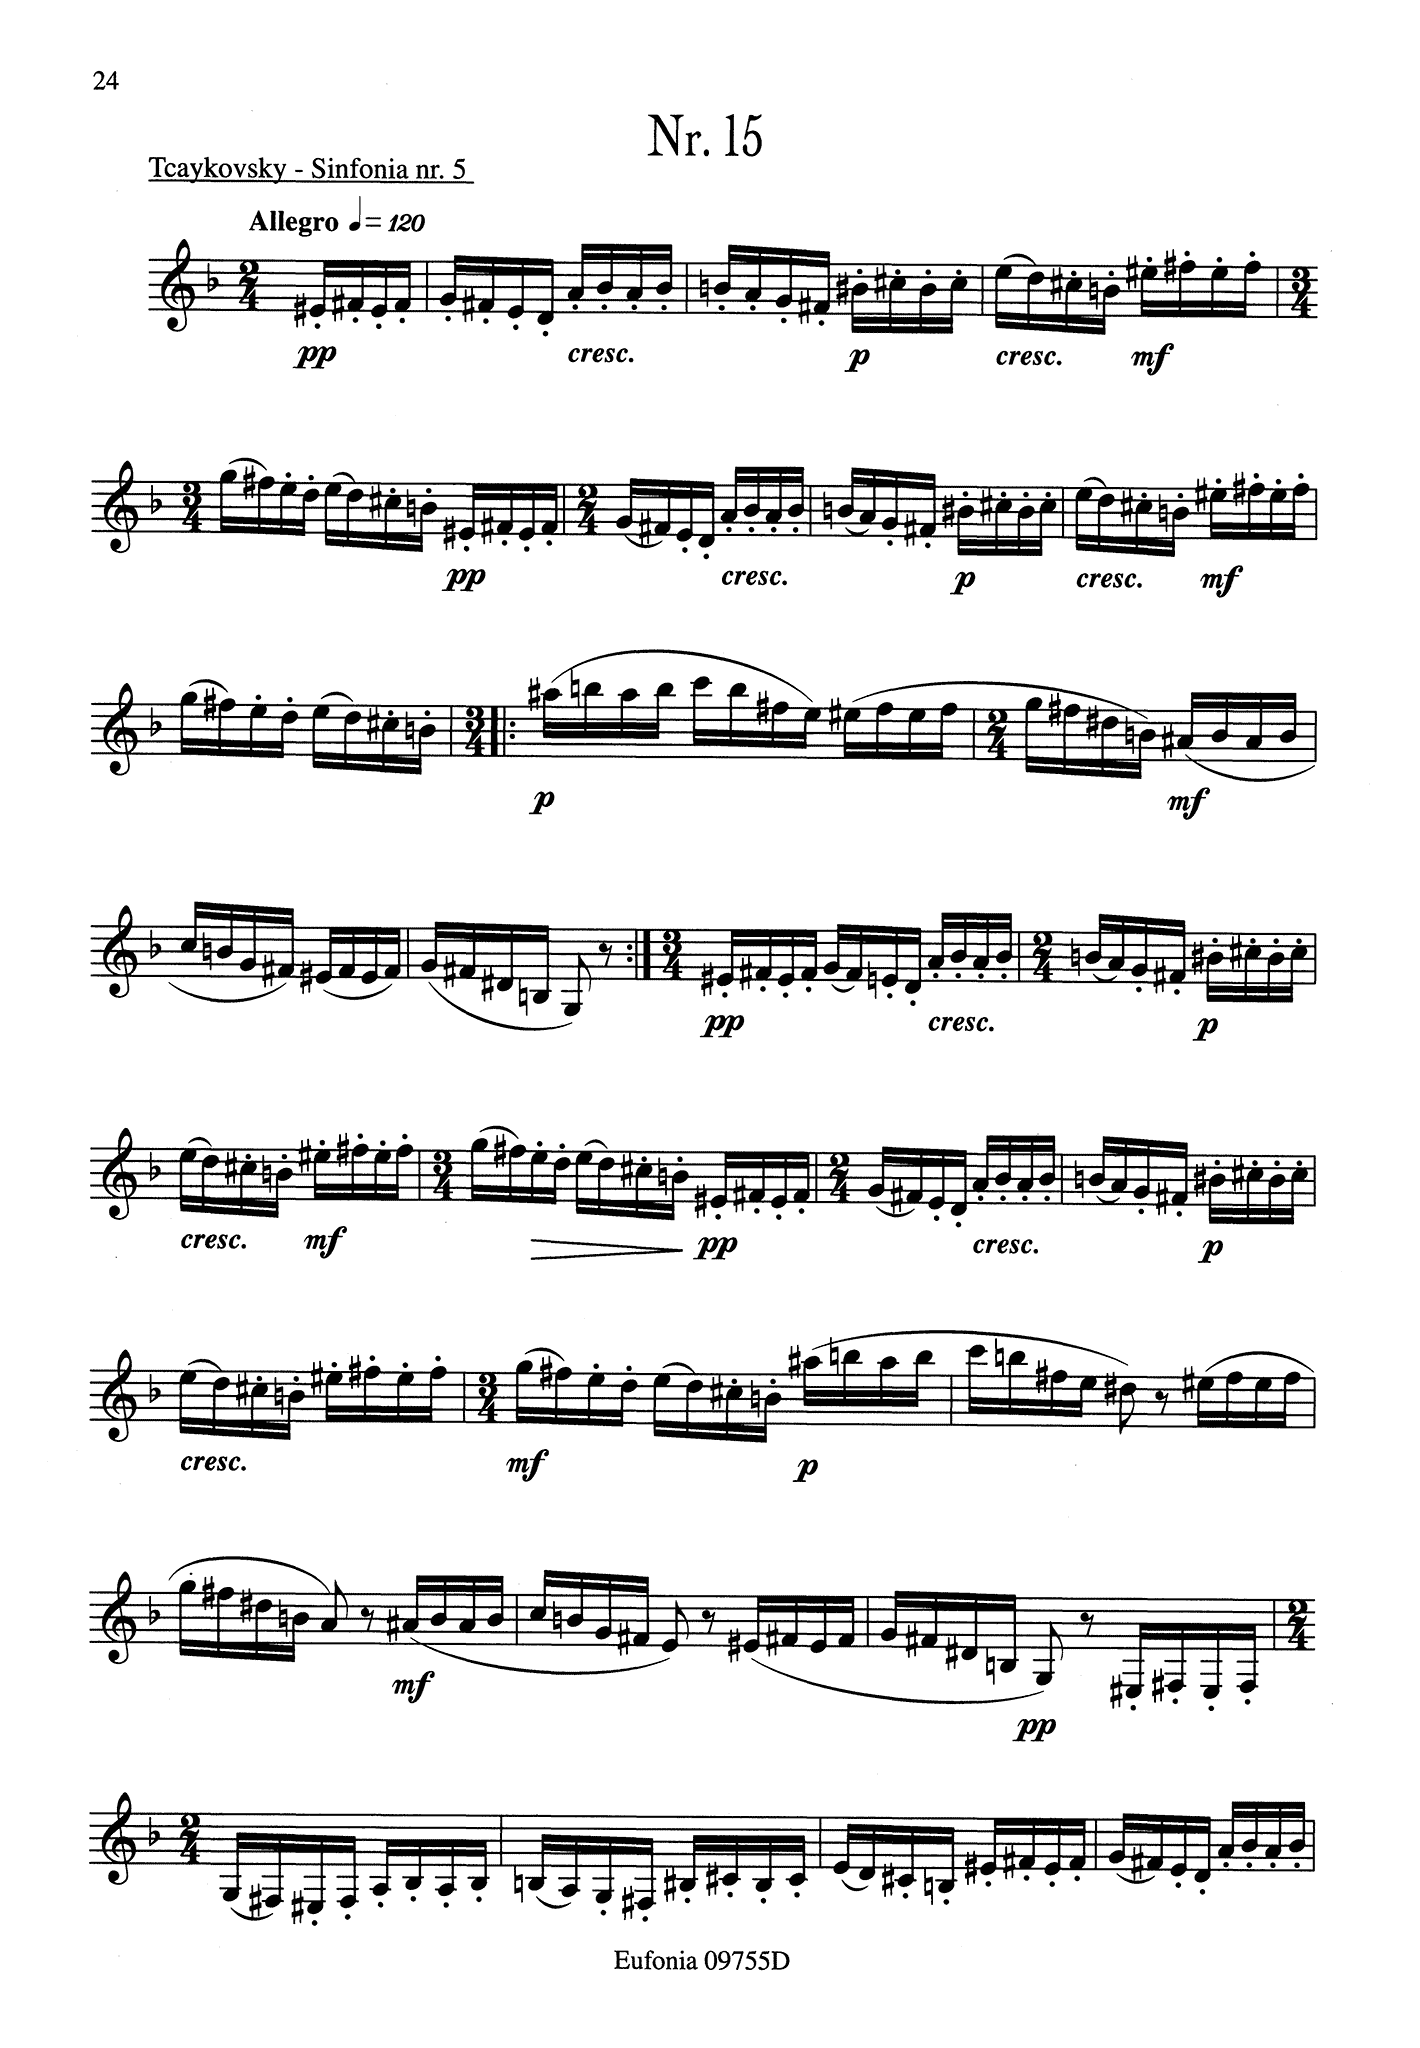 23 Studies for Clarinet Page 24